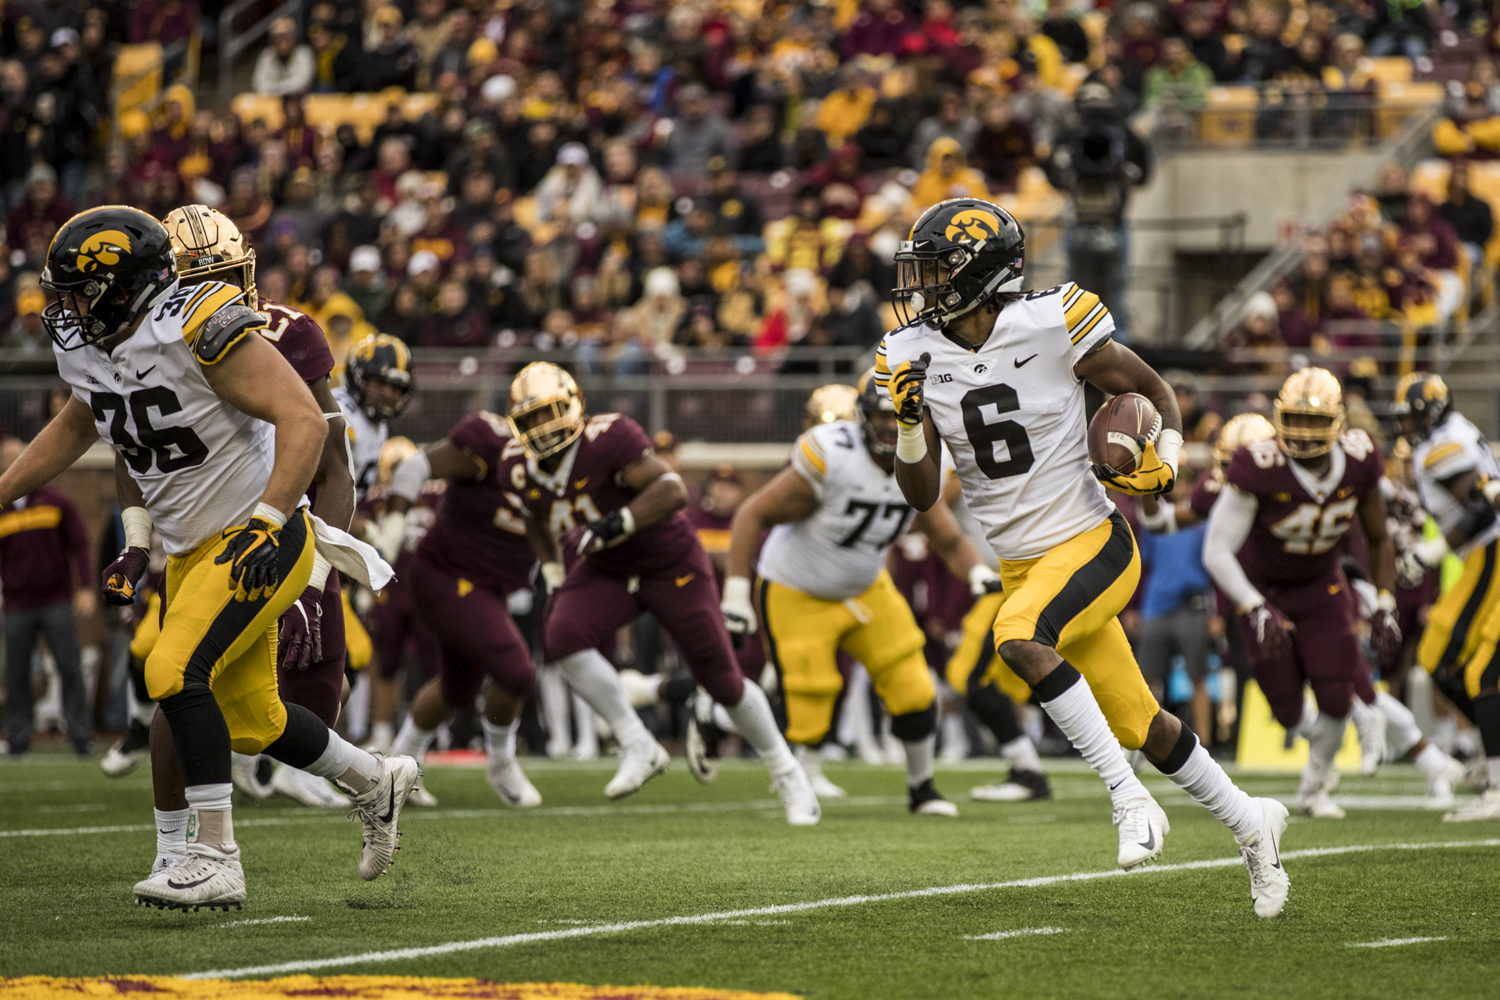 Iowa+wide+reciever+Ihmir+Smith-Marsette+carries+the+ball+during+Iowa%27s+game+against+Minnesota+at+TCF+Bank+Stadium+on+Saturday%2C+October+6%2C+2018.+The+Hawkeyes+defeated+the+Golden+Gophers+48-31.